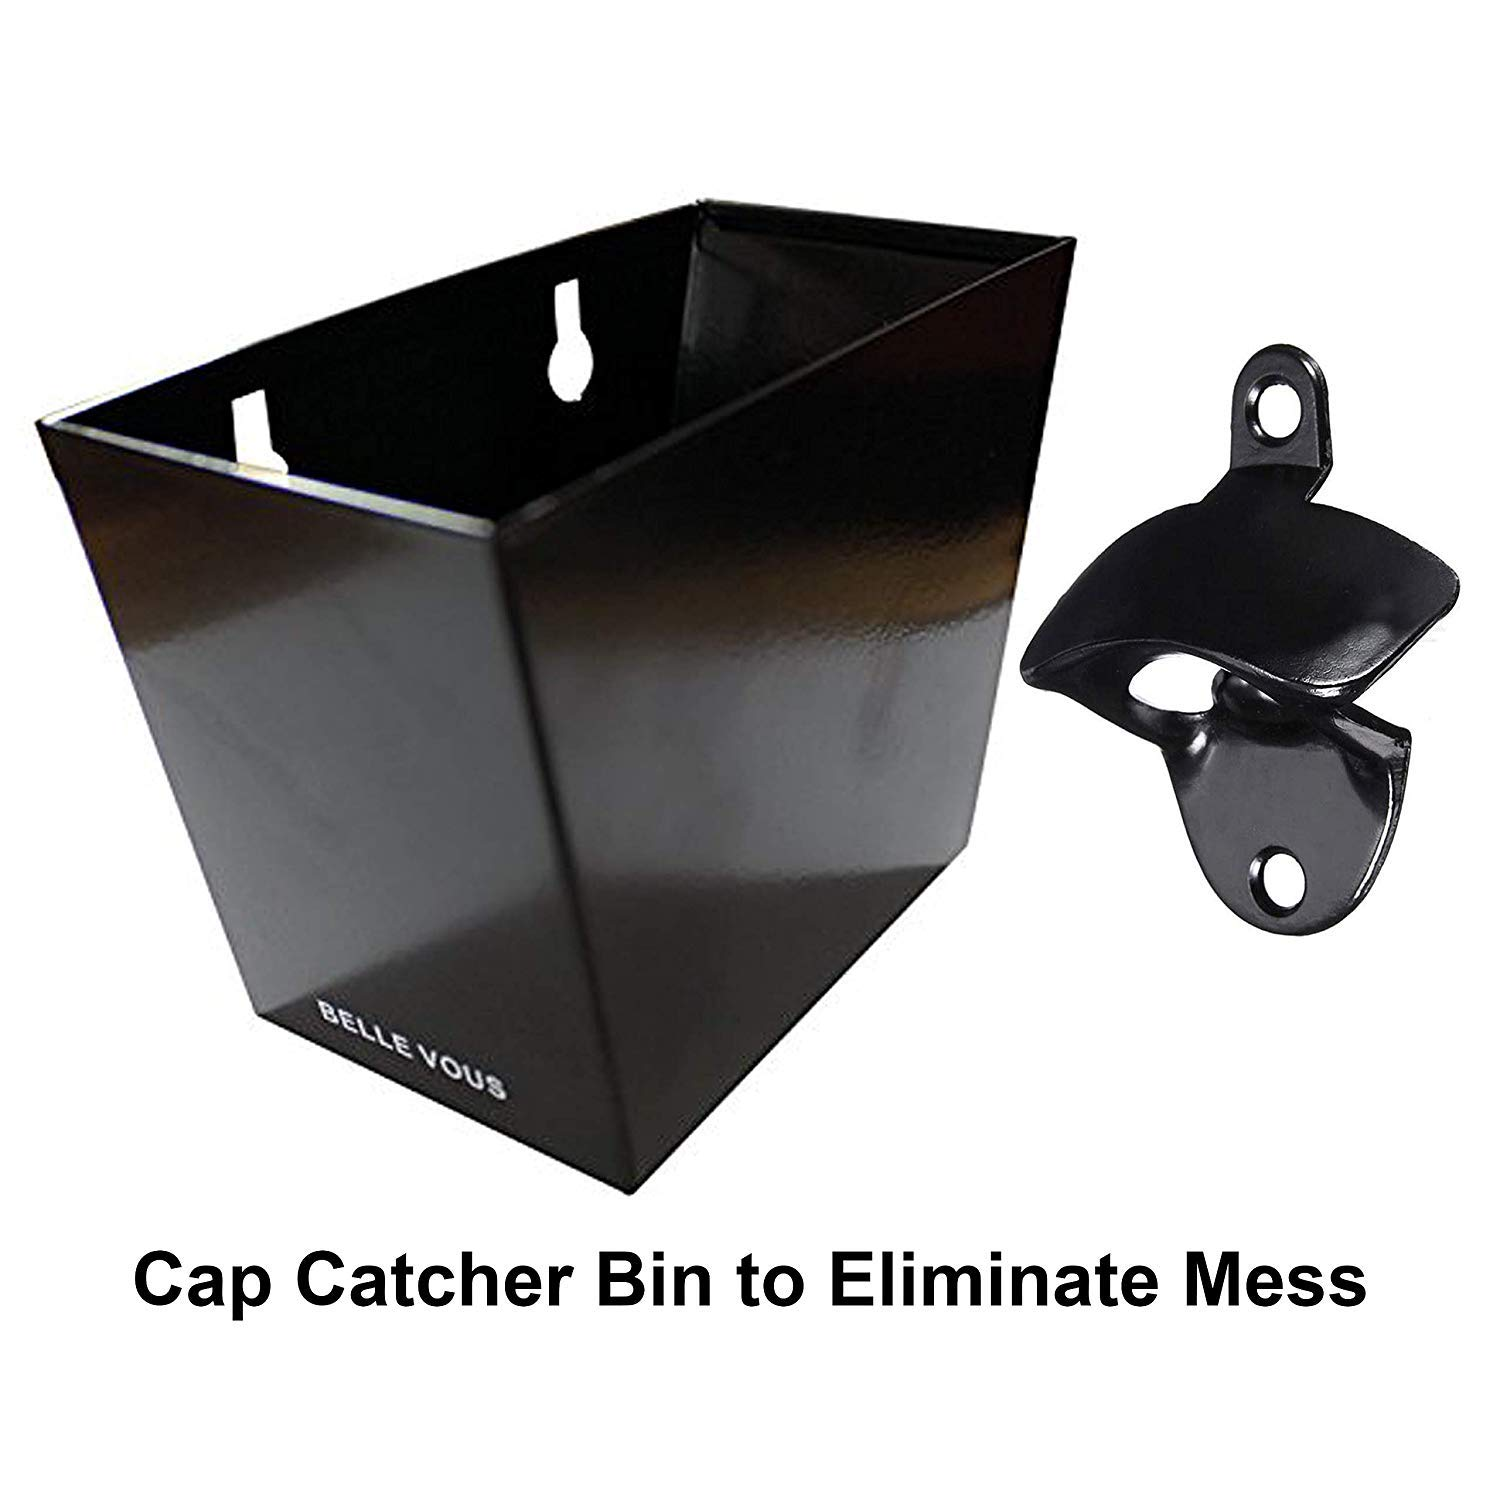 Heavy Duty Matte Black Bottle Opener with Steel Cap Catcher Bin Holds Upto 75 Caps Includes 4 Stainless Steel Mounting Screws /& Wall Plugs Wall Mounted Bottle Opener